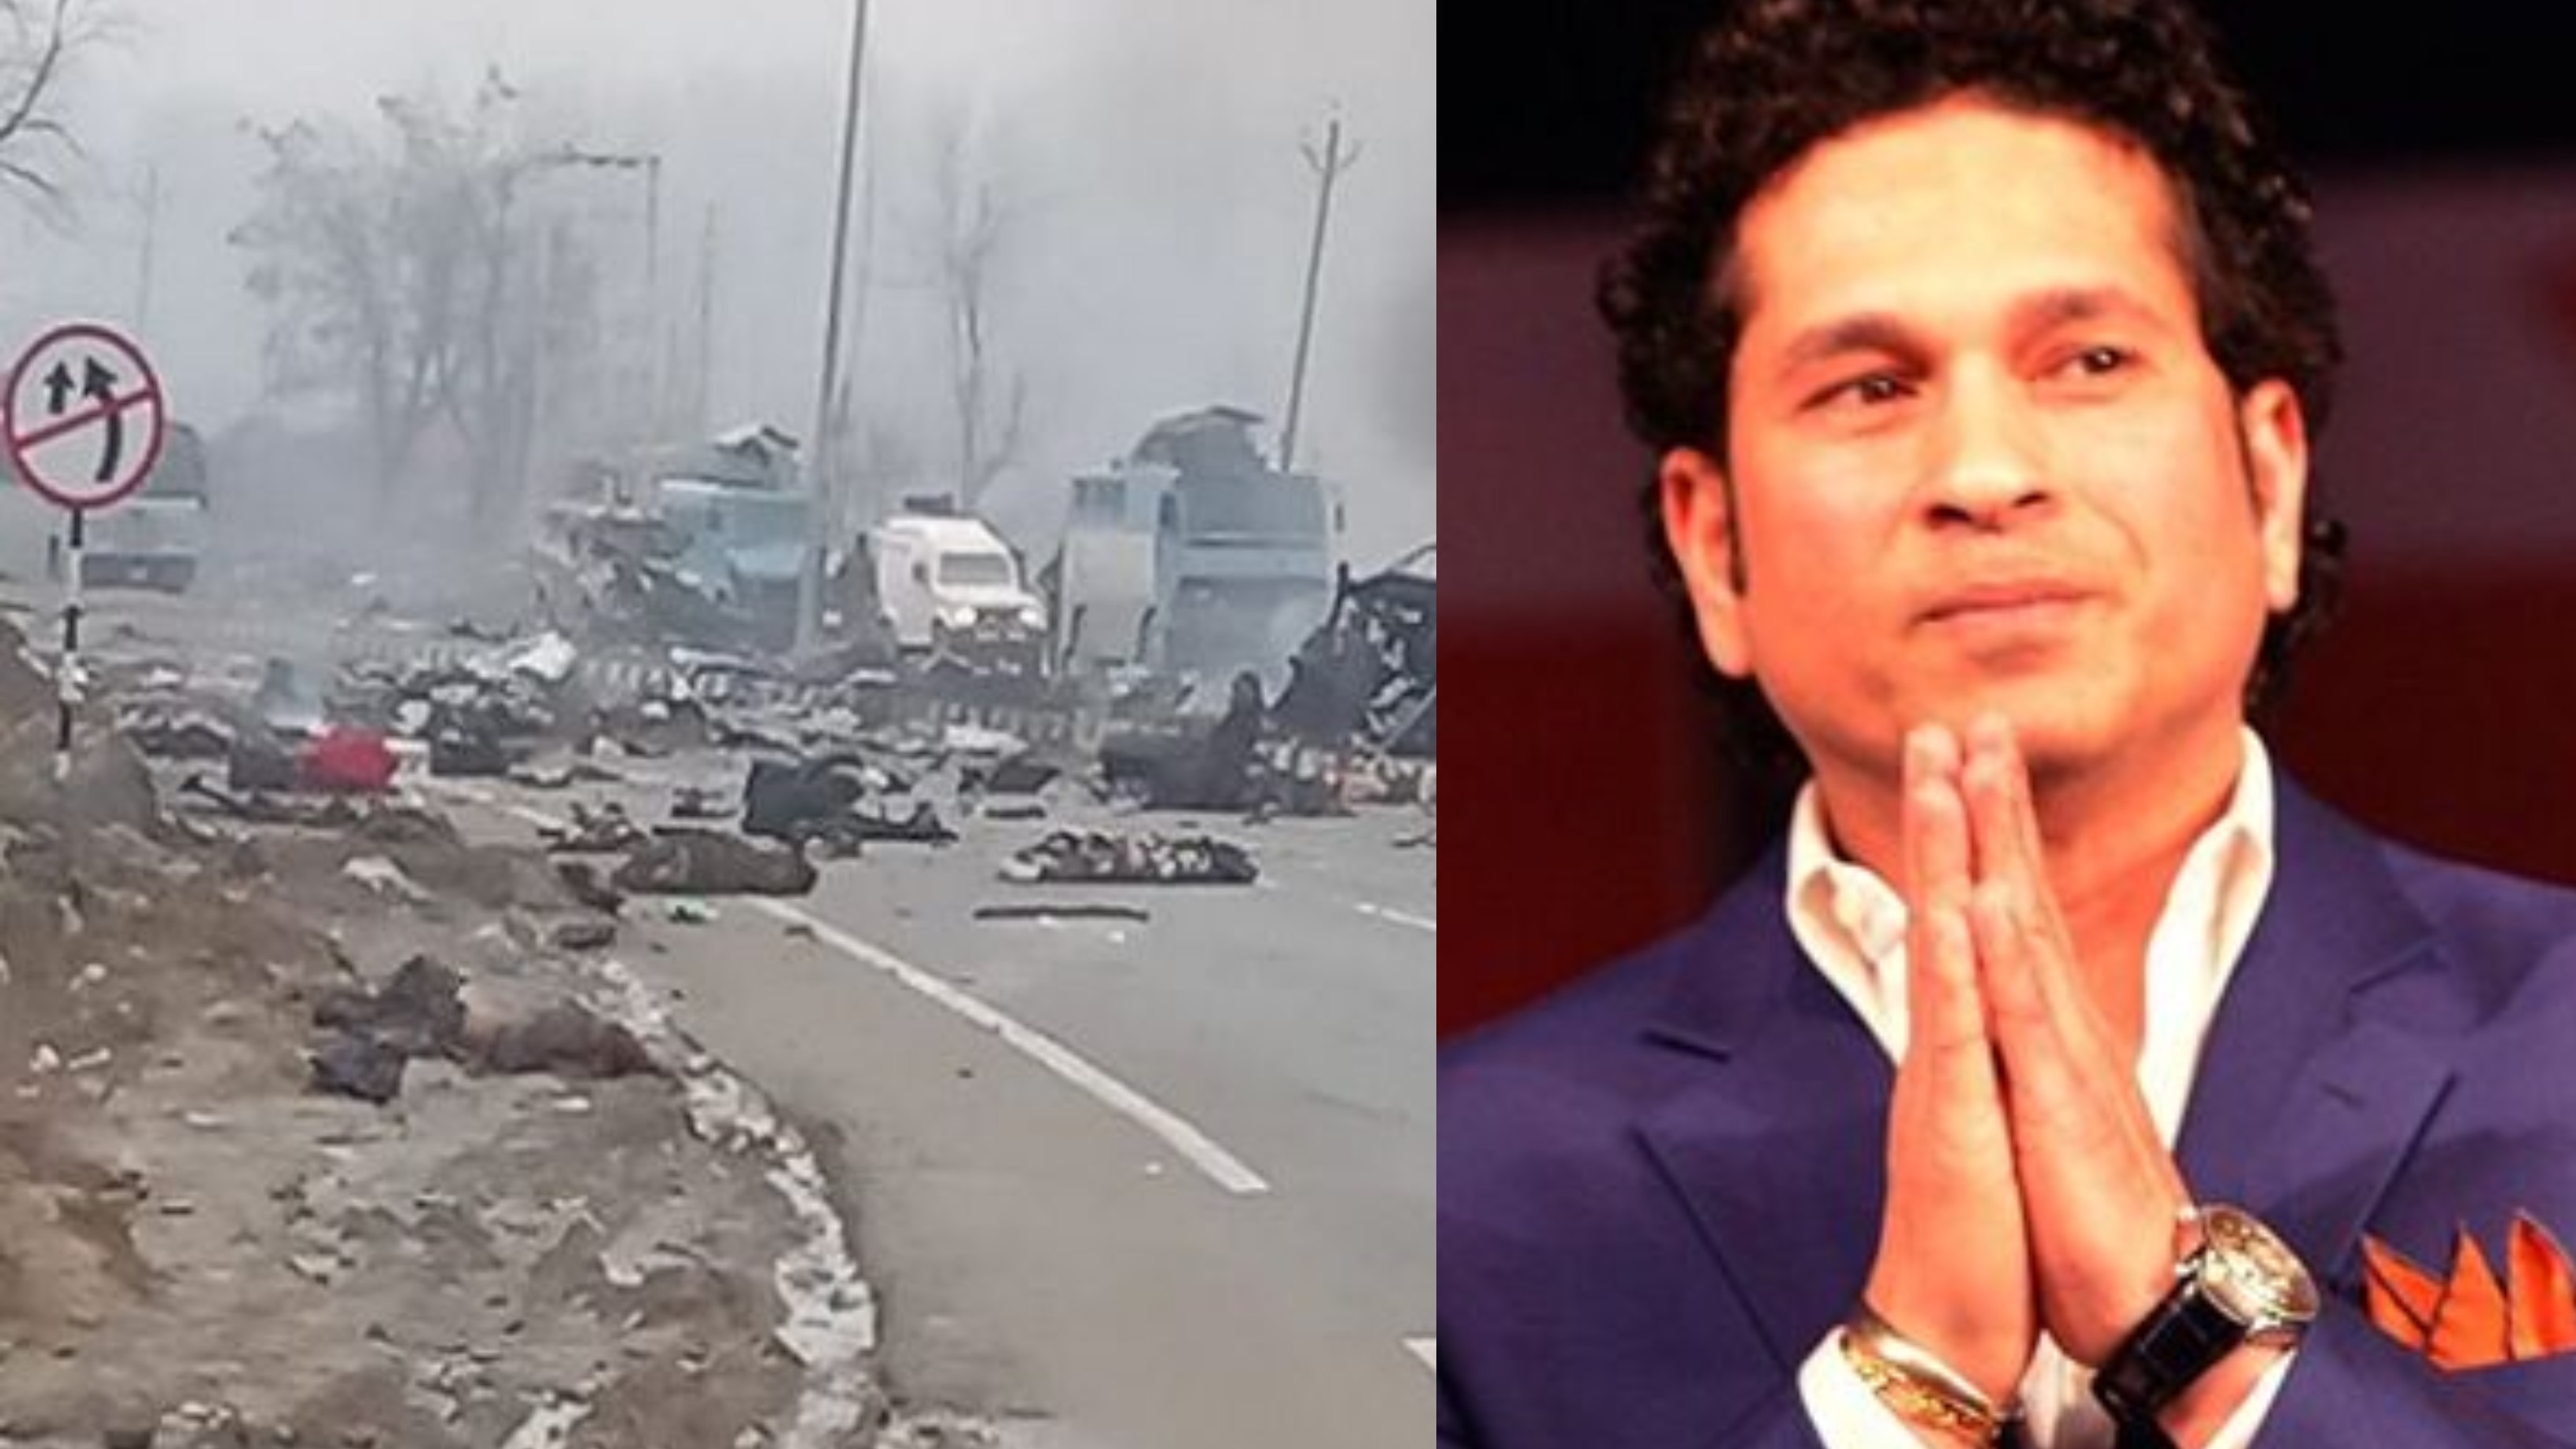 Sachin Tendulkar reacts to Pulwama terrorist attack